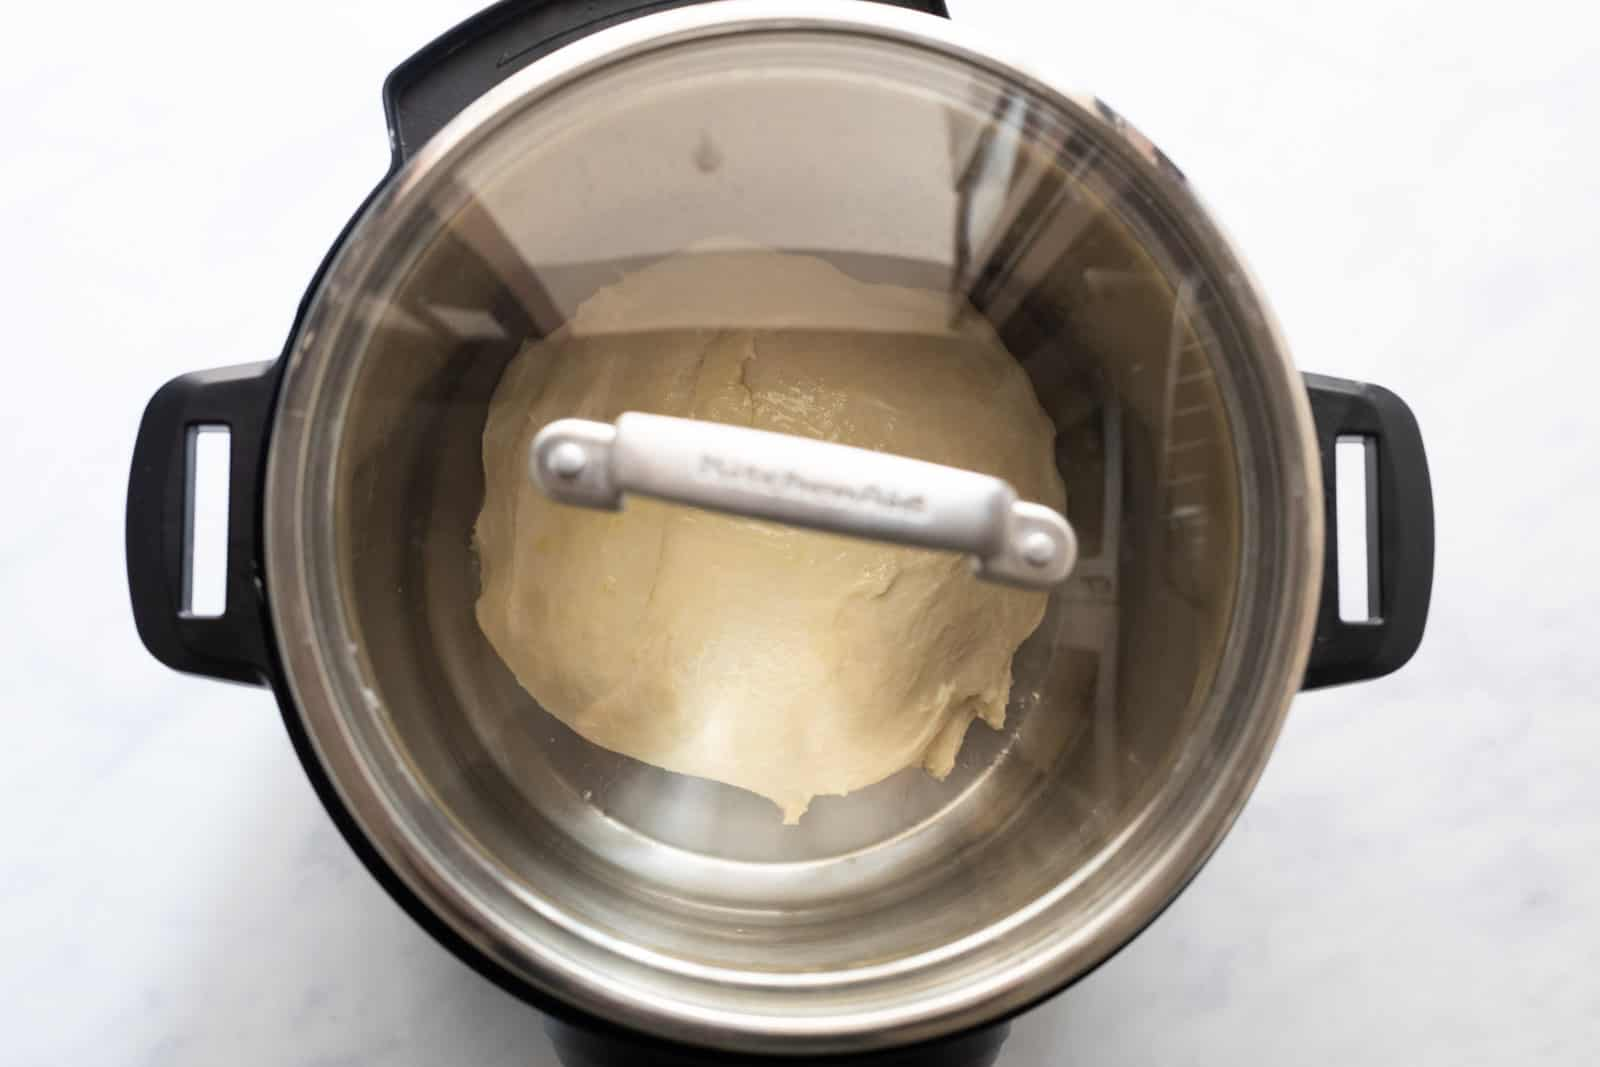 Glass lid on the dough to let the dough proof